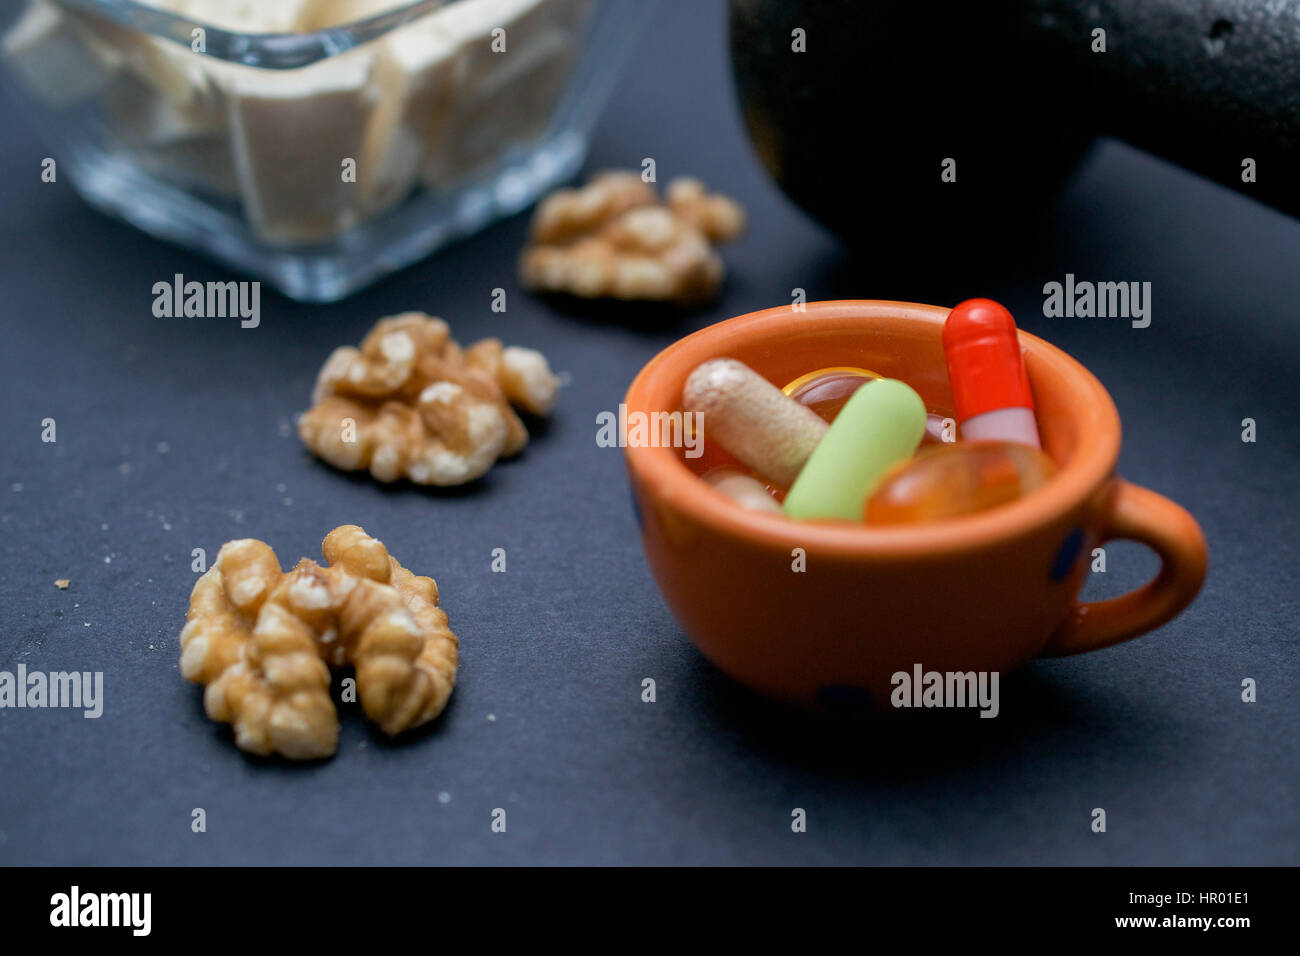 Dumbbell, walnut, tofu and dietary supplements on dark background: fitness and weight loss concept. Stock Photo